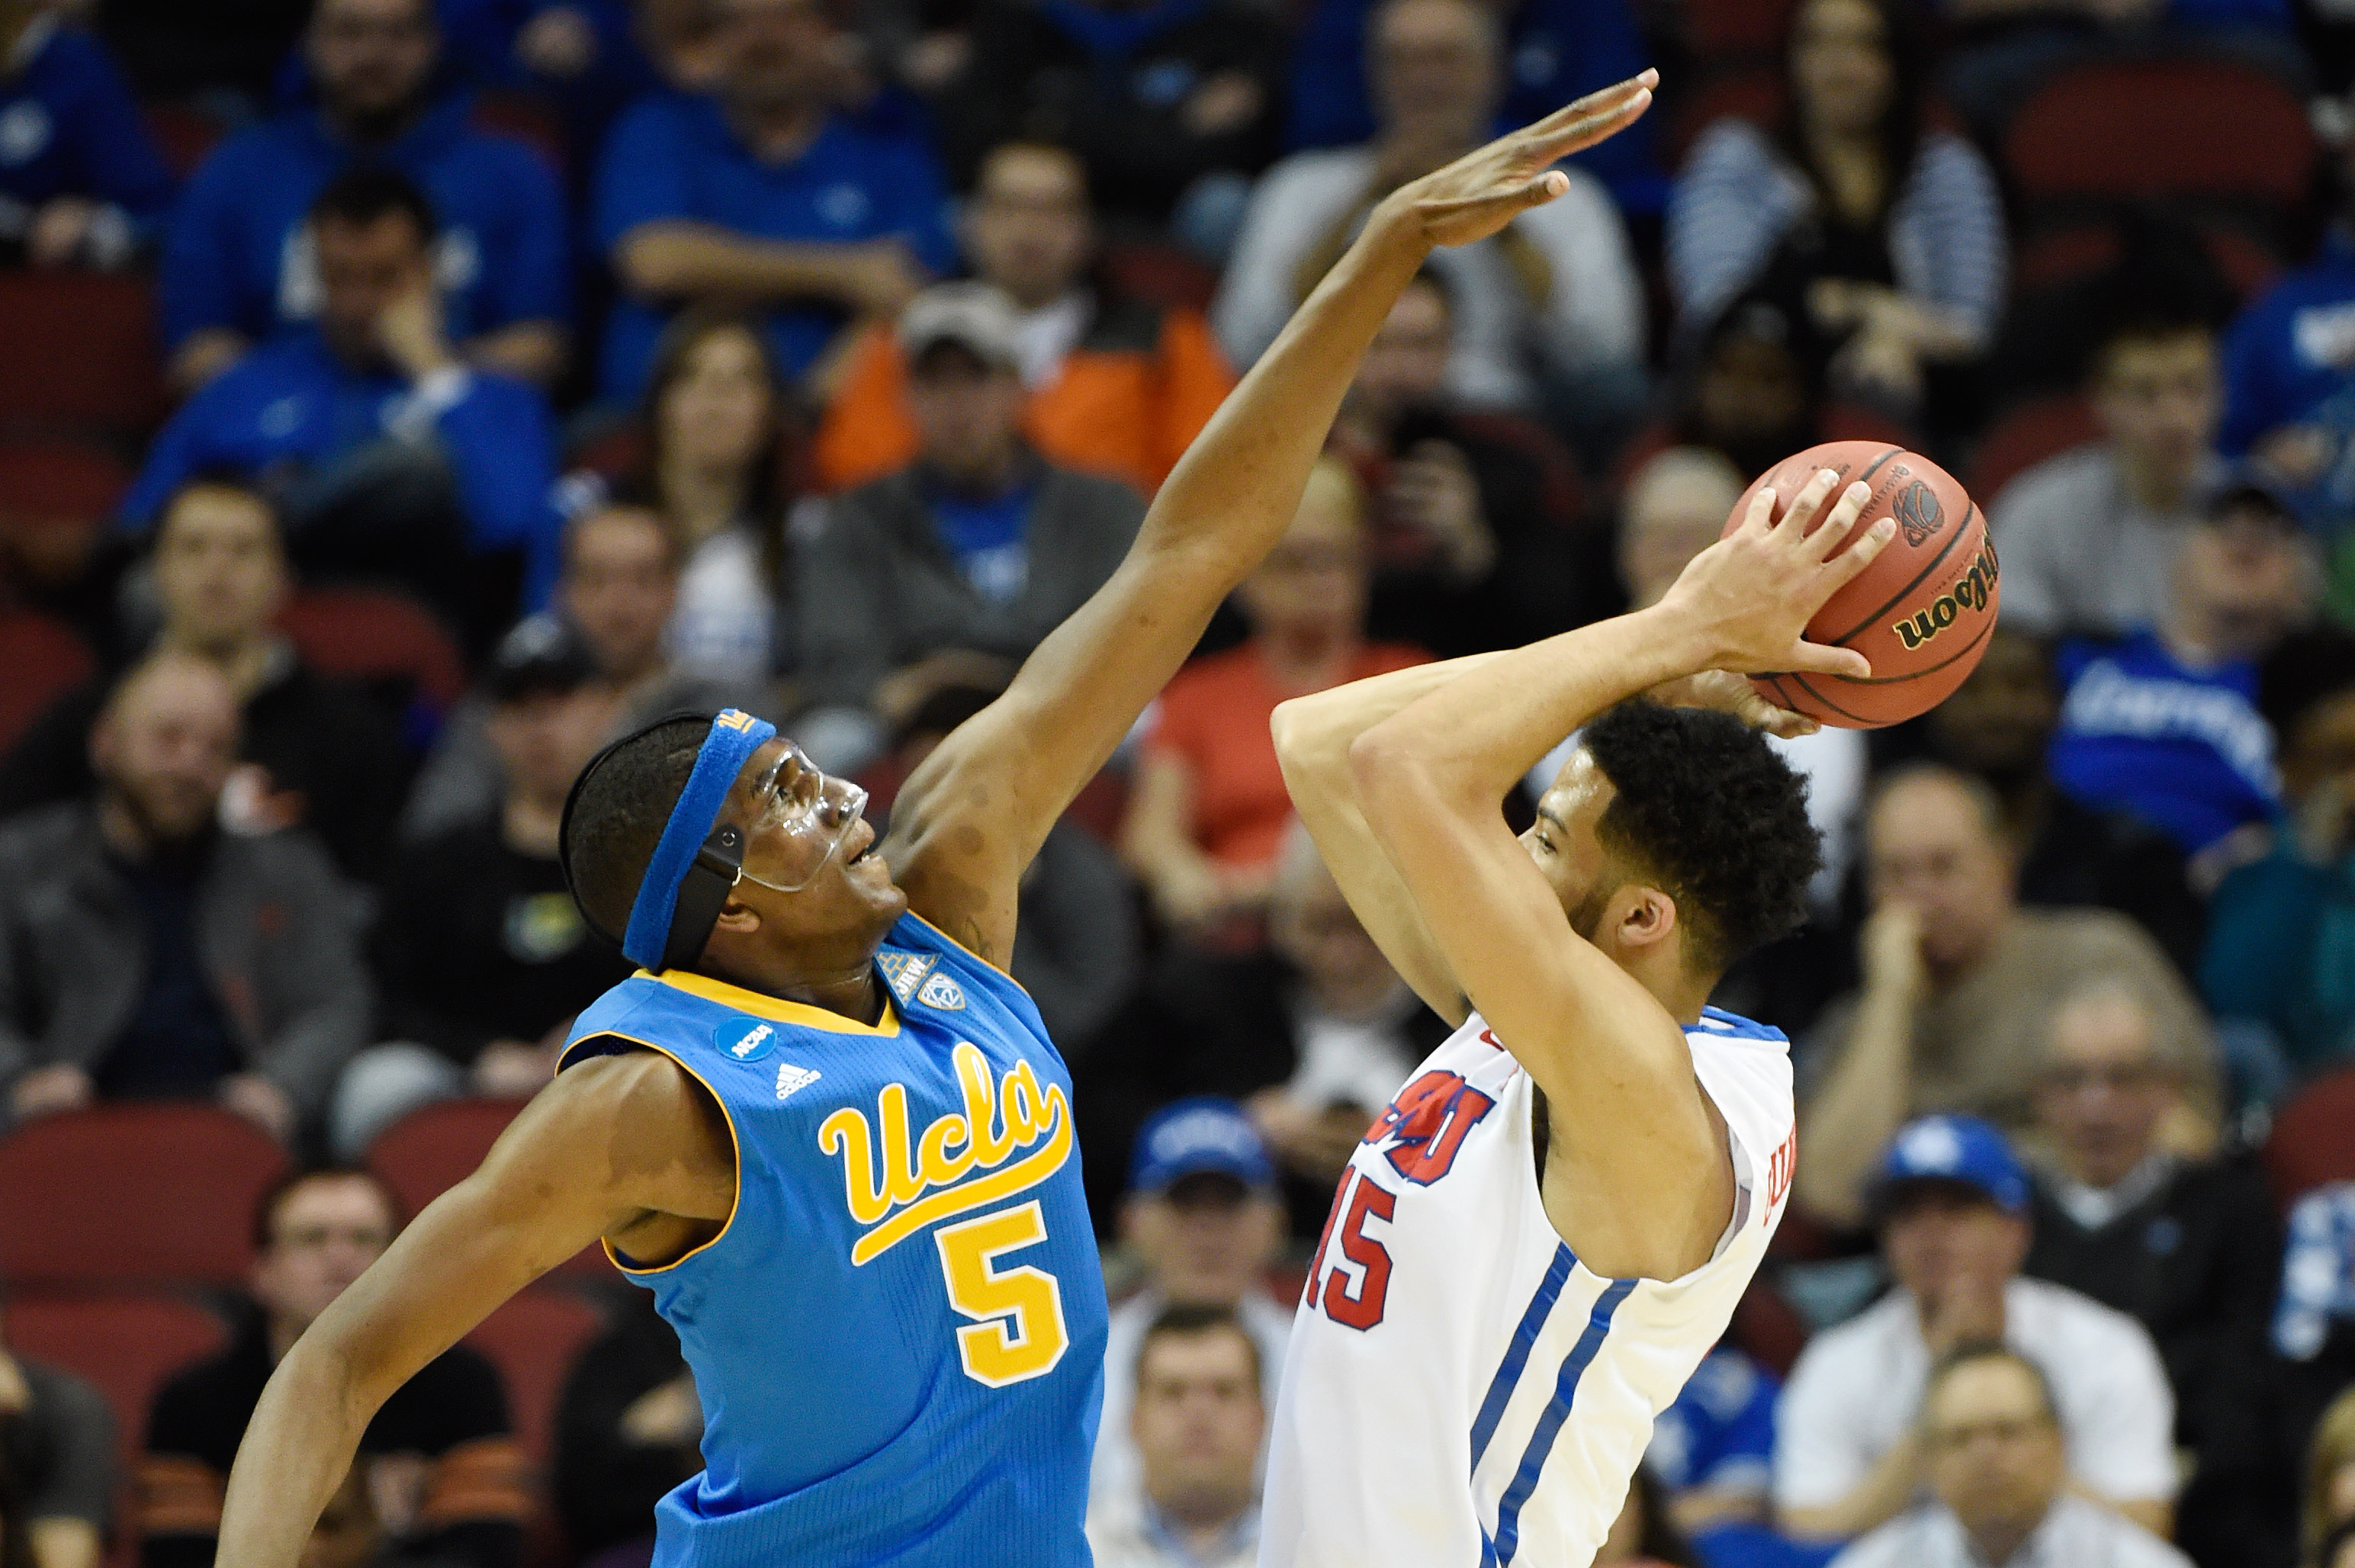 Milwaukee native Kevon Looney leads UCLA against second-seeded Gonzaga